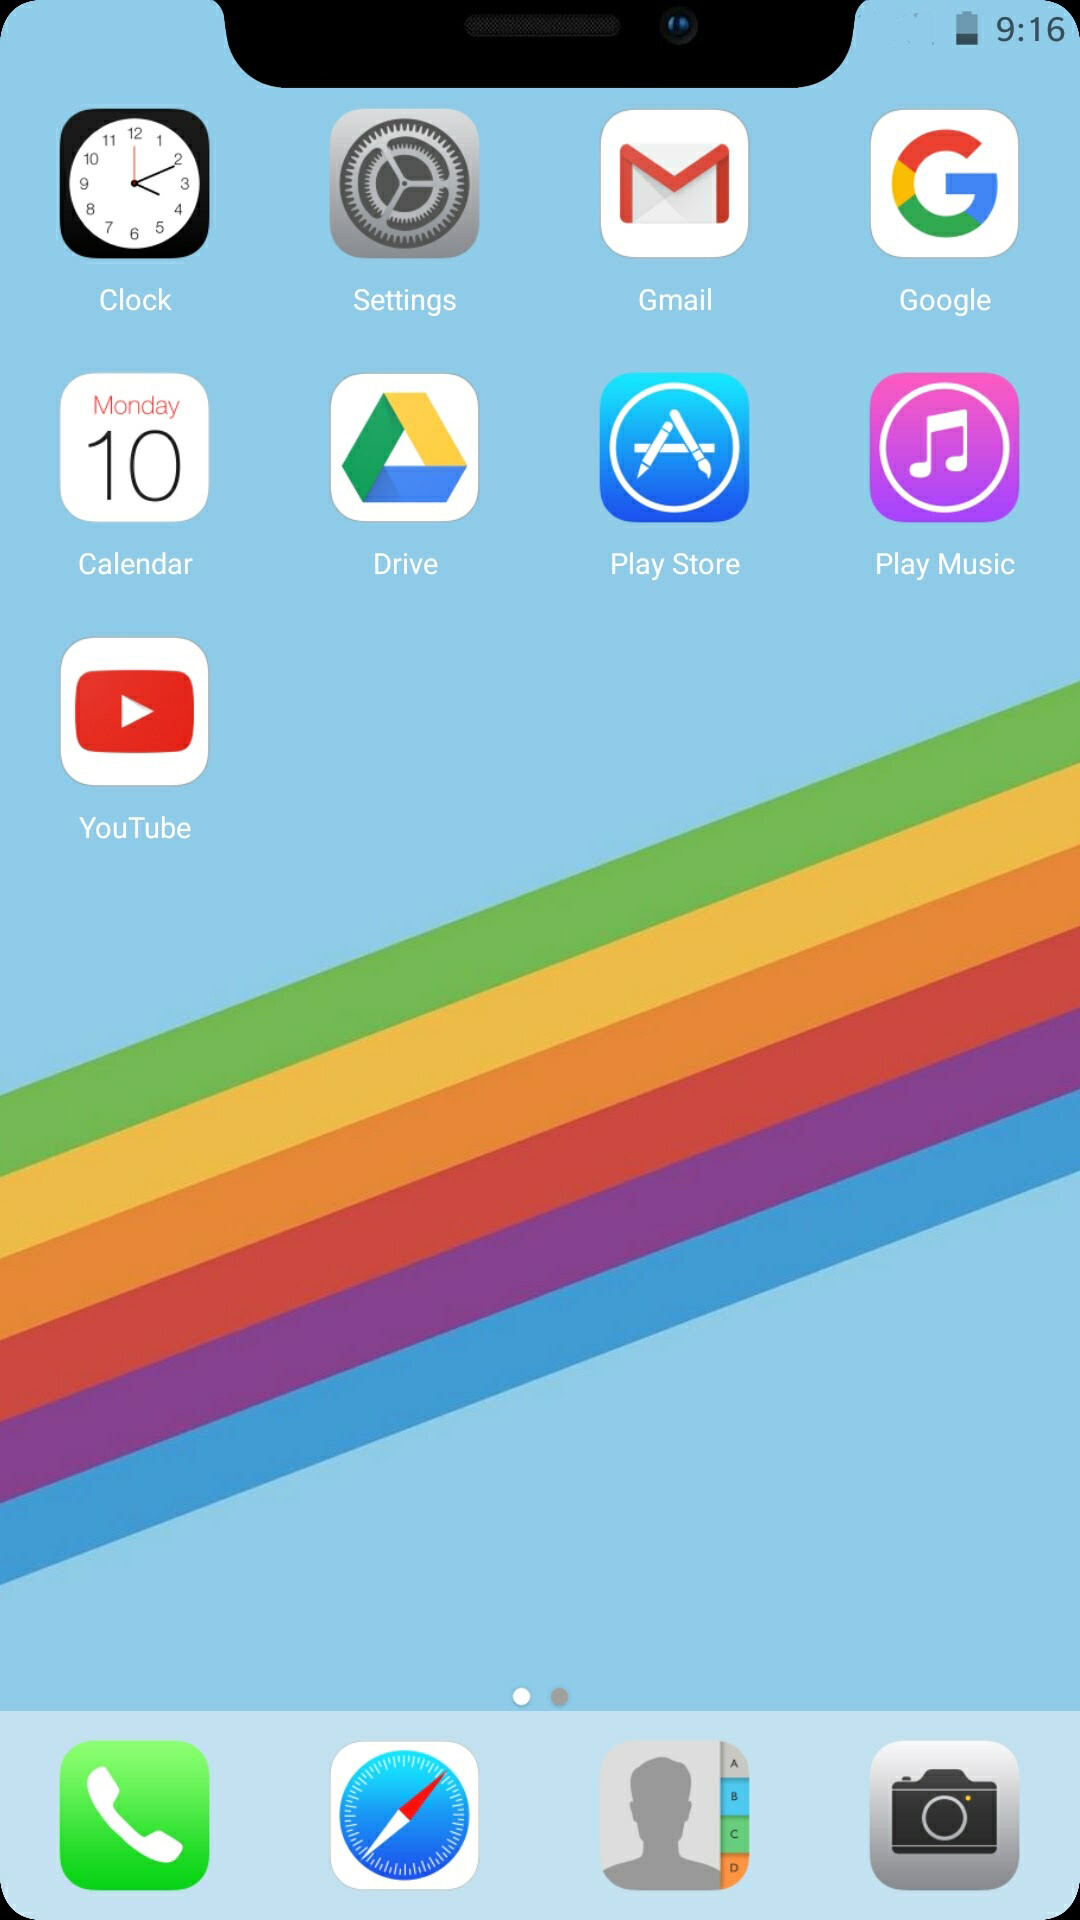 Turn Your Android Into An Iphone X With These Launcher